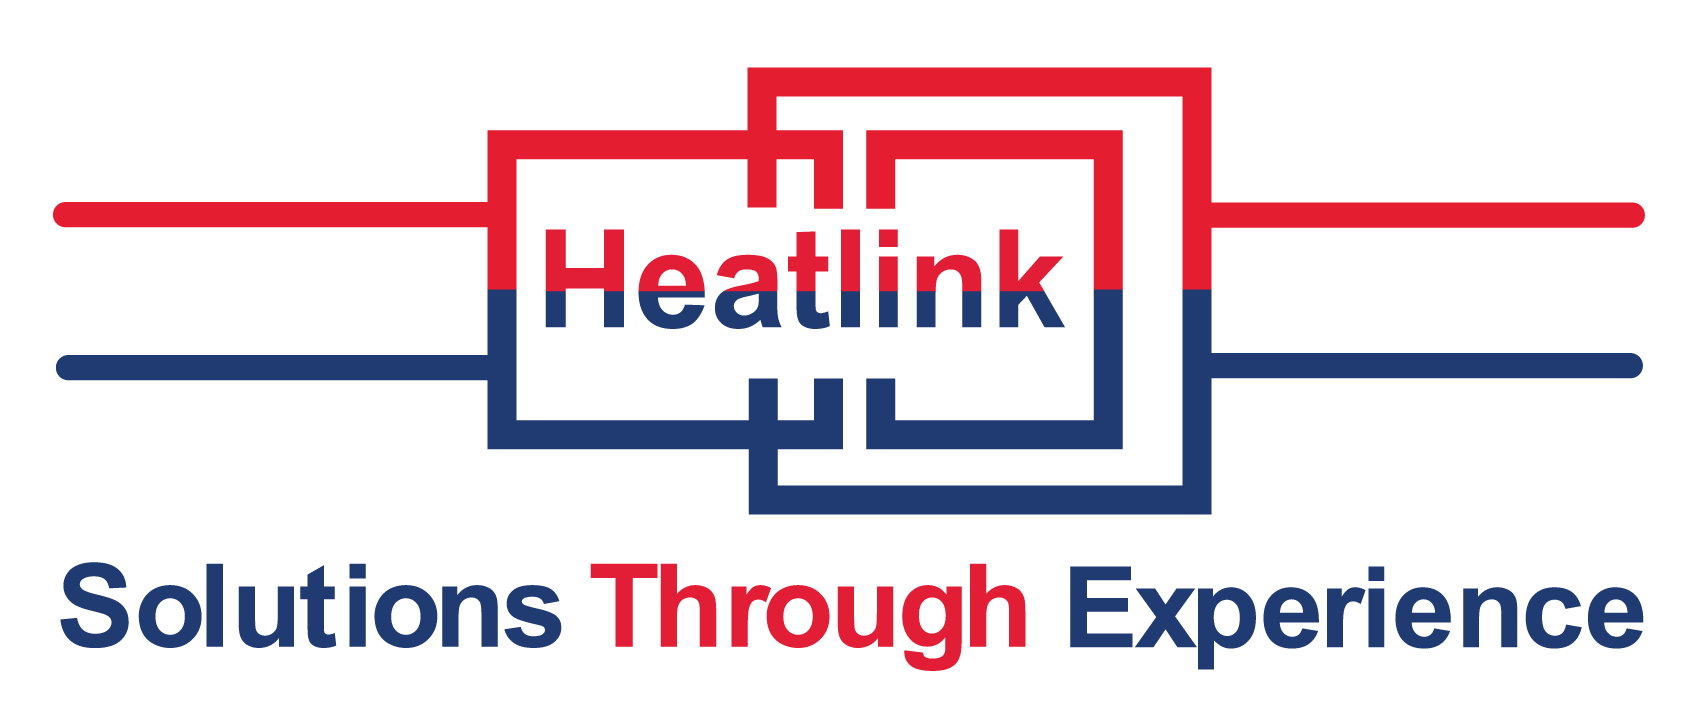 HEATLINK LOGO - Heat Interface Units London